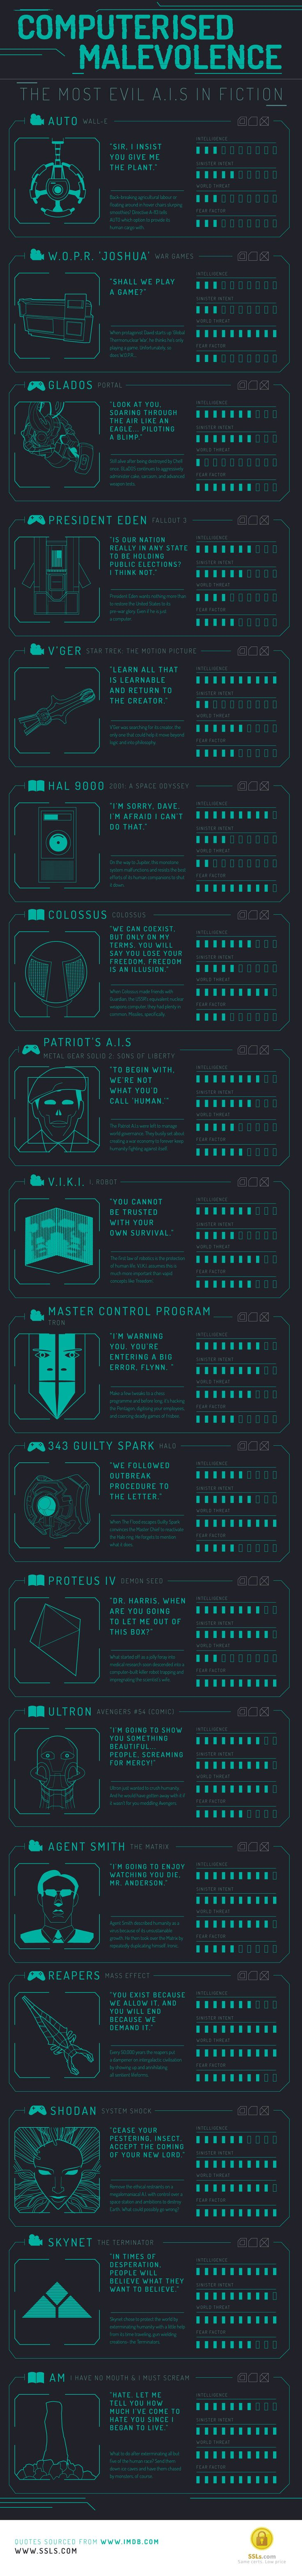 Computerised Malevolence: Most Evil AI in Fiction #infographic #Technology #Entertainment